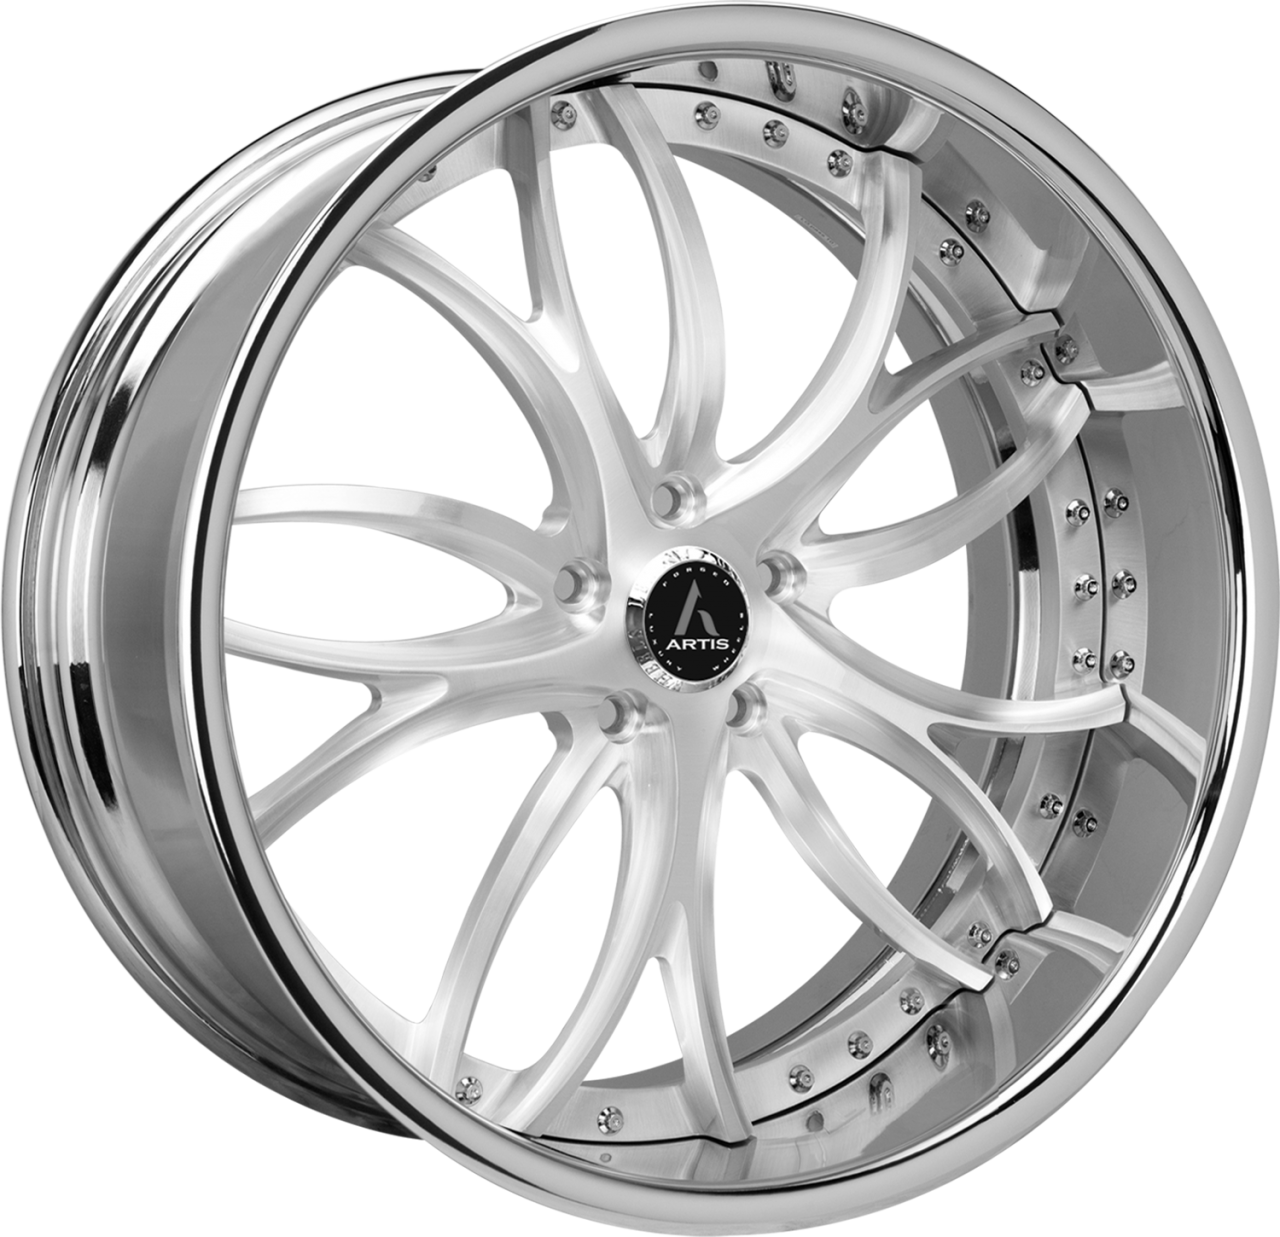 Artis Forged Biscayne wheel with Brushed finish